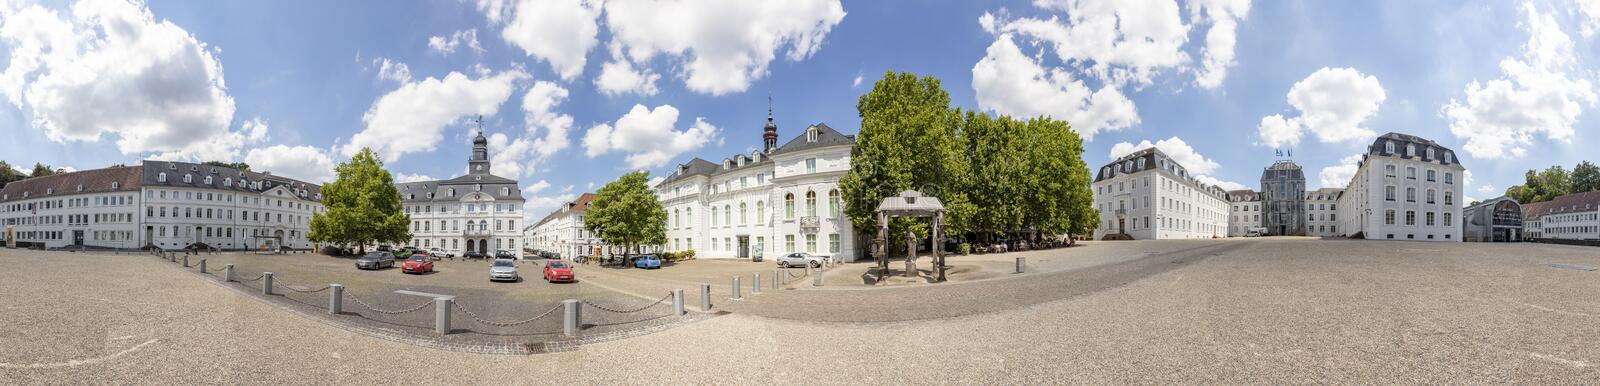 Panoramic outside view to  castle in Saarbruecken. SAARBRUECKEN, GERMANY - AUG 5, 2018: panoramic outside view to  castle in Saarbruecken under blue sky, baroque royalty free stock images